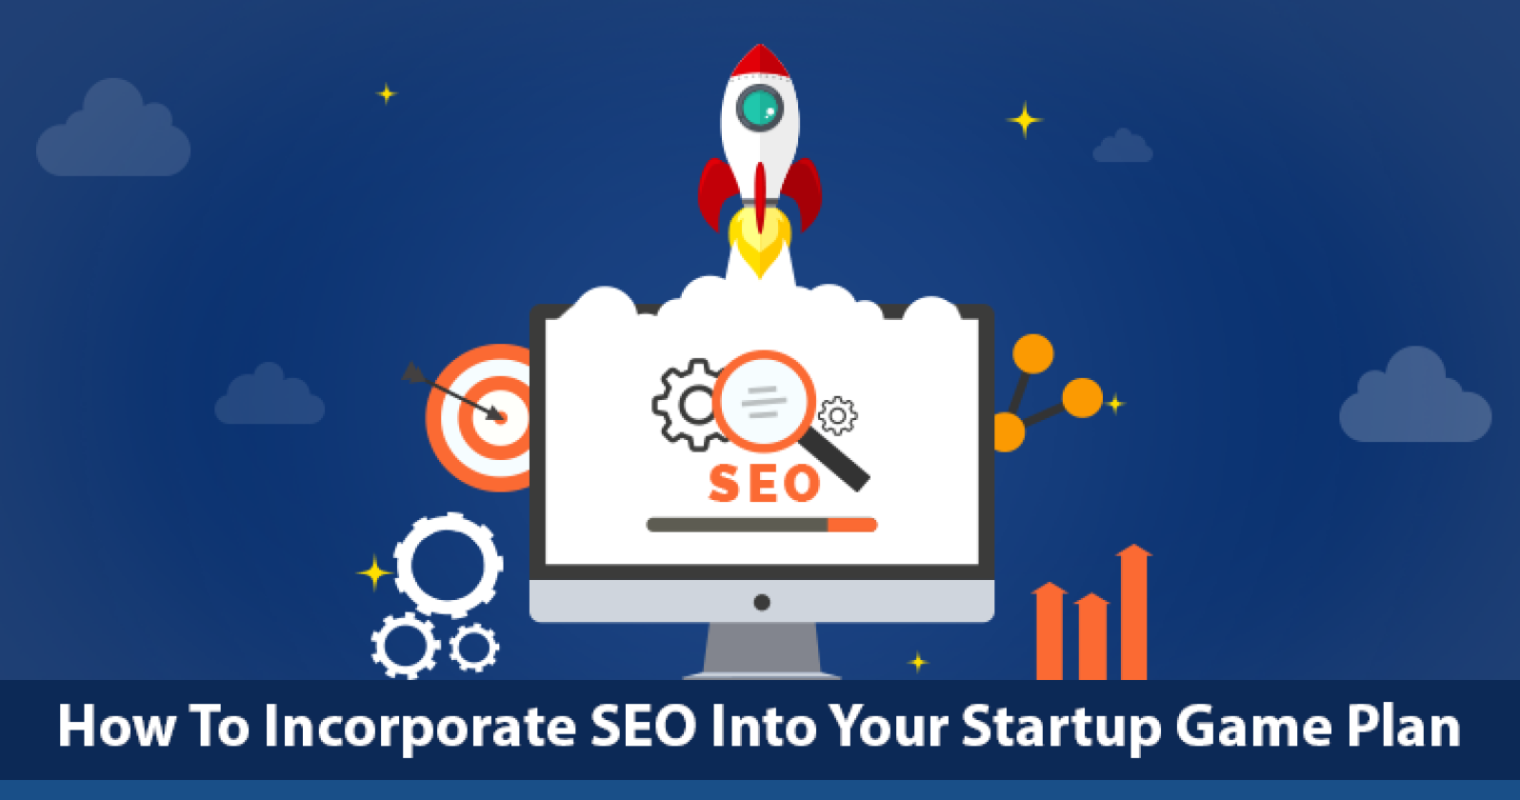 SEO for Startups: 4 Keys to Success